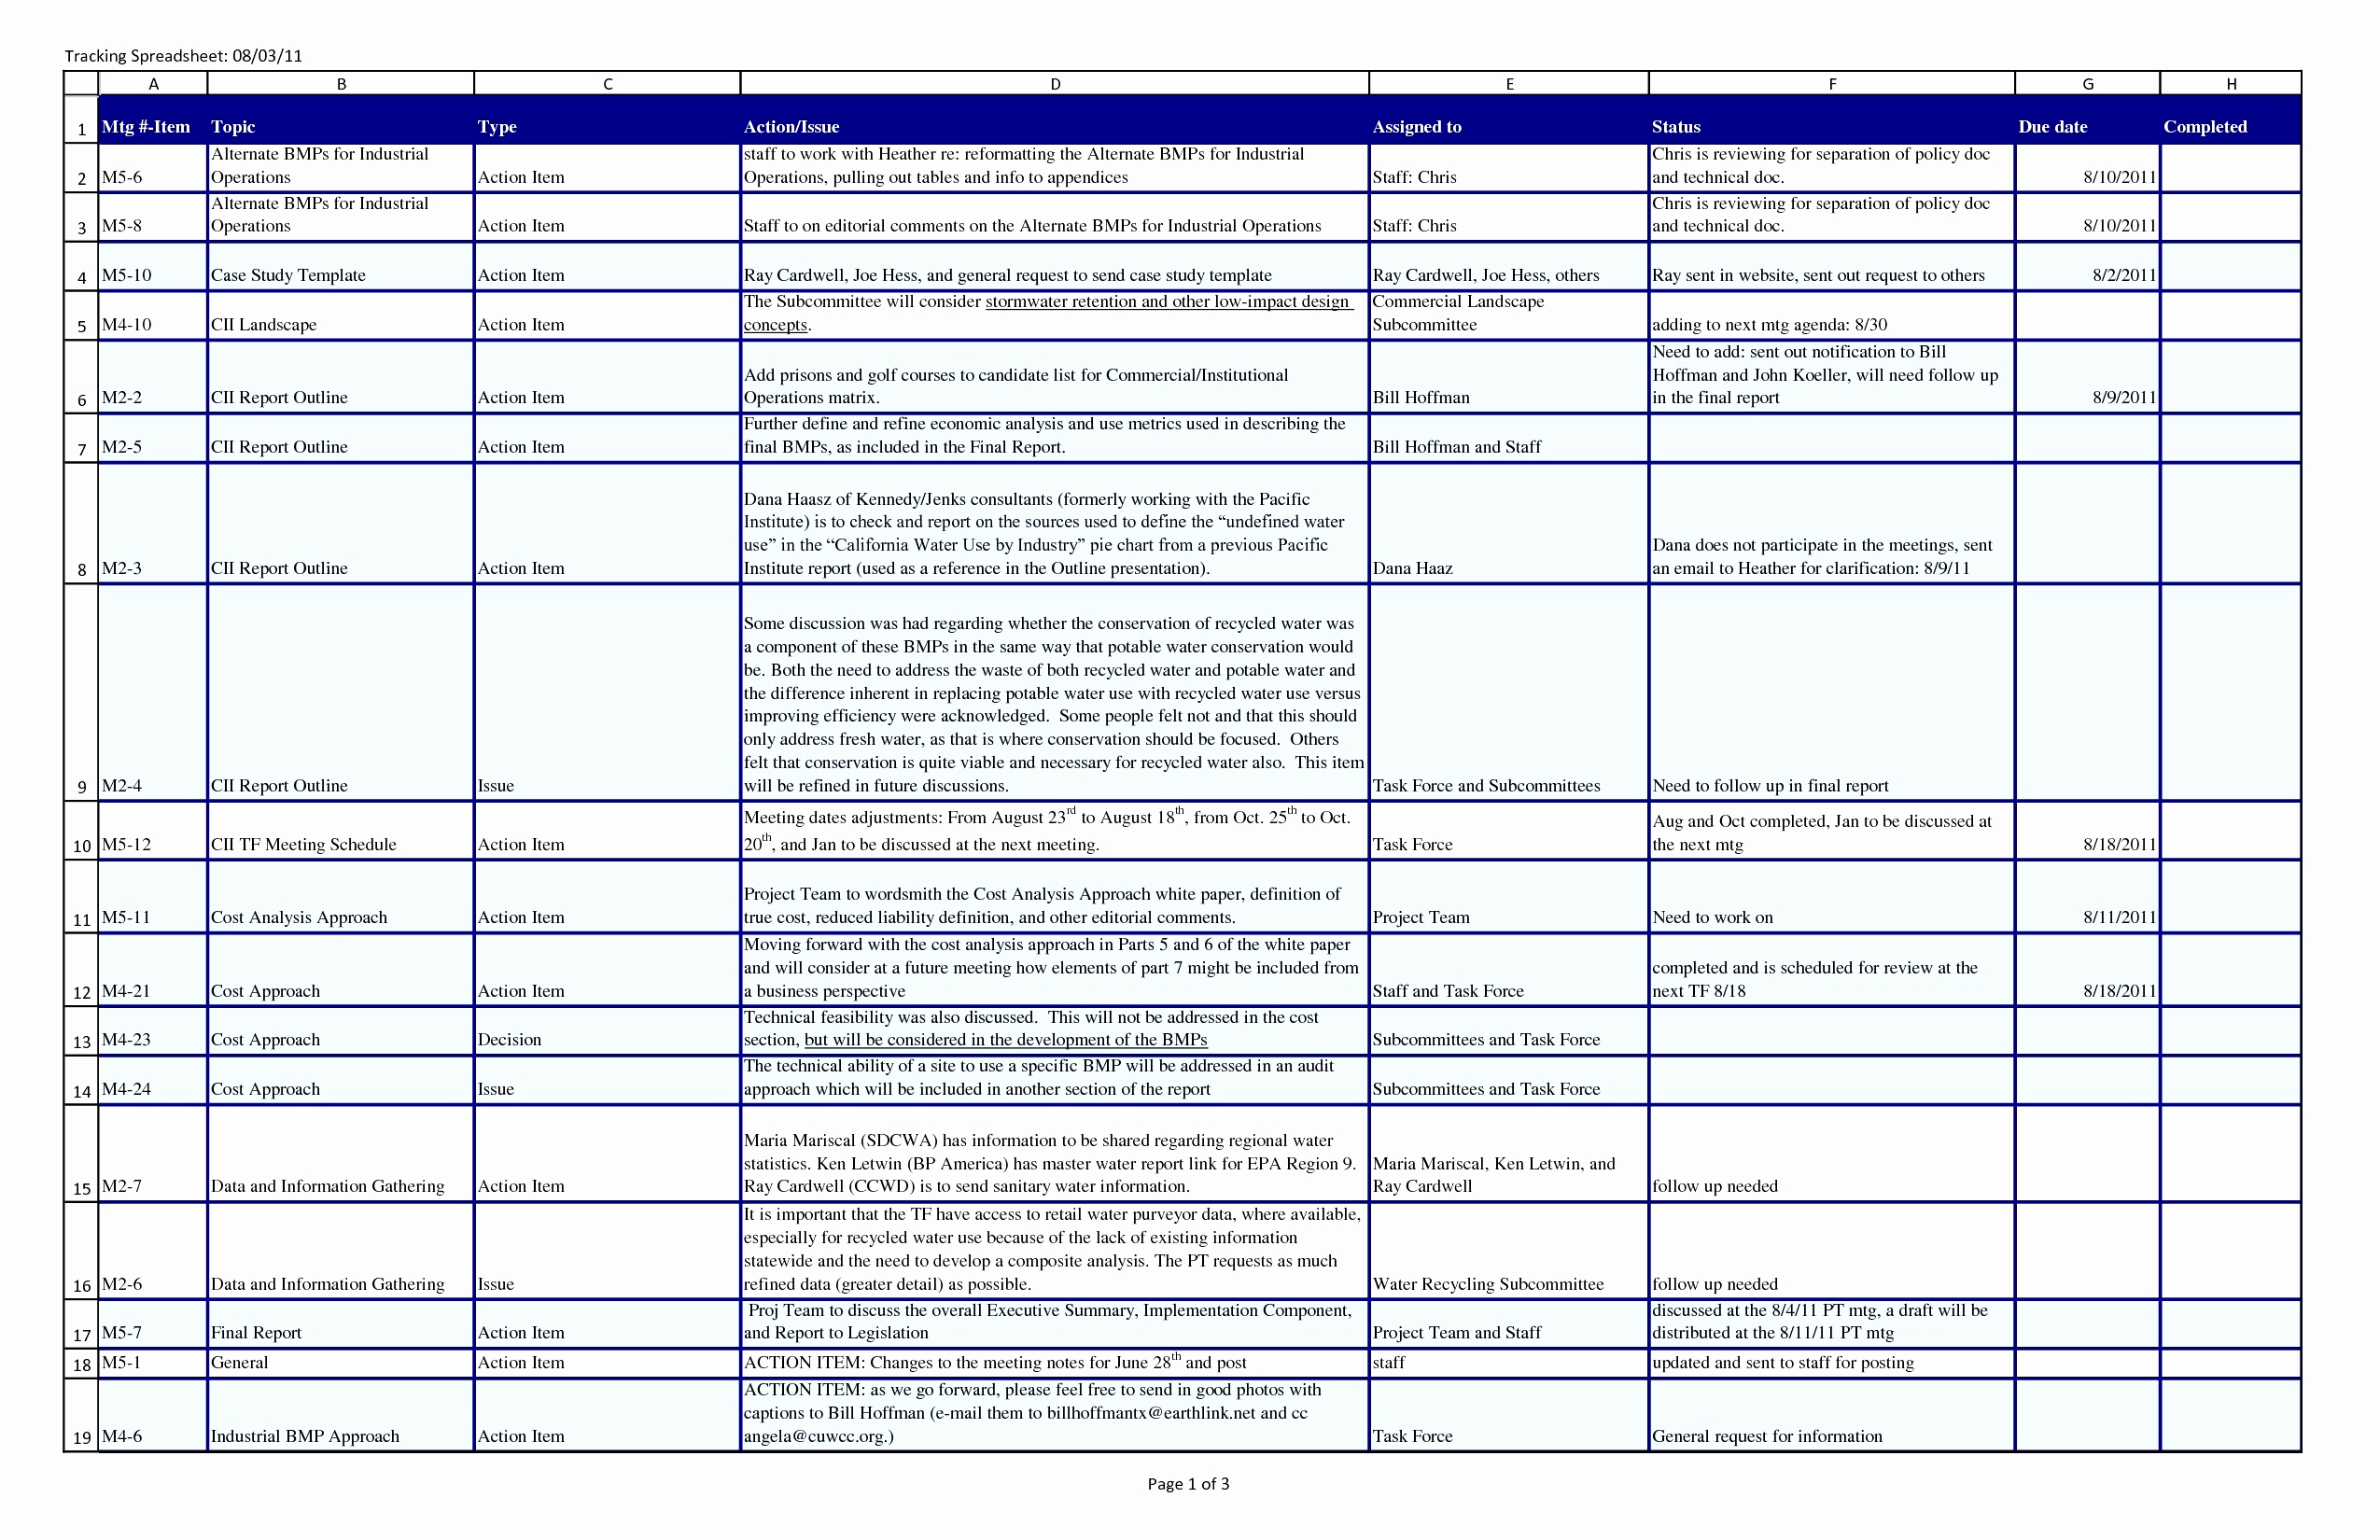 50 Beautiful Contract Tracking Spreadsheet Template   Documents For Contract Tracking Spreadsheet